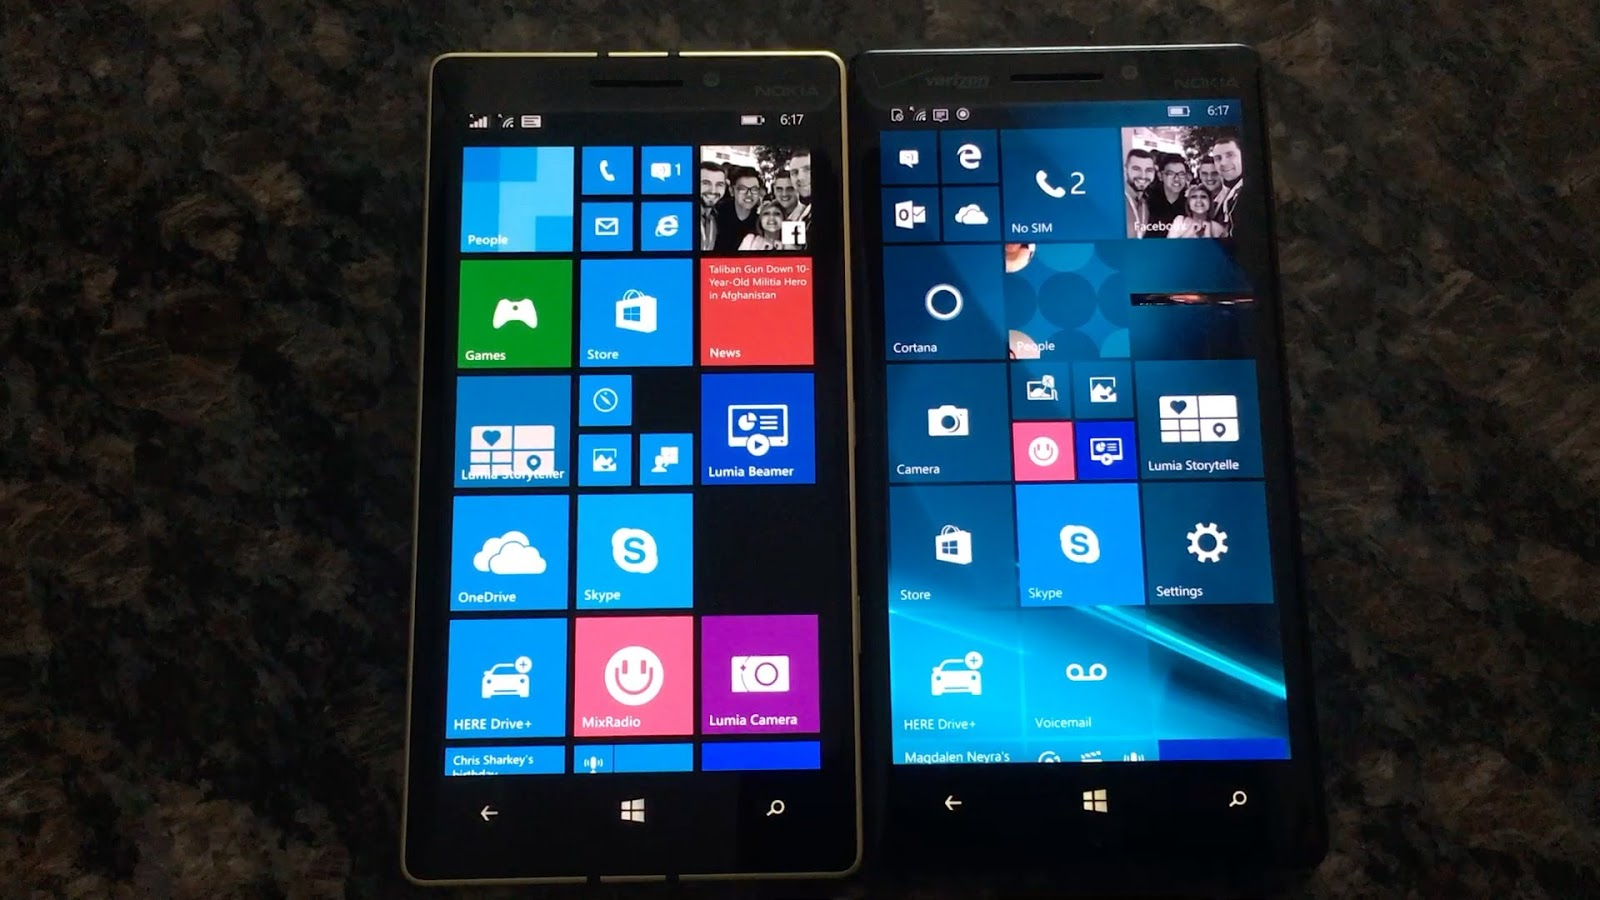 Tutorial for downgradingflashing microsoft lumia devices this tutorial works for both flashing microsoft lumia devices and downgrading to windows 81 from 10 mobile baditri Choice Image